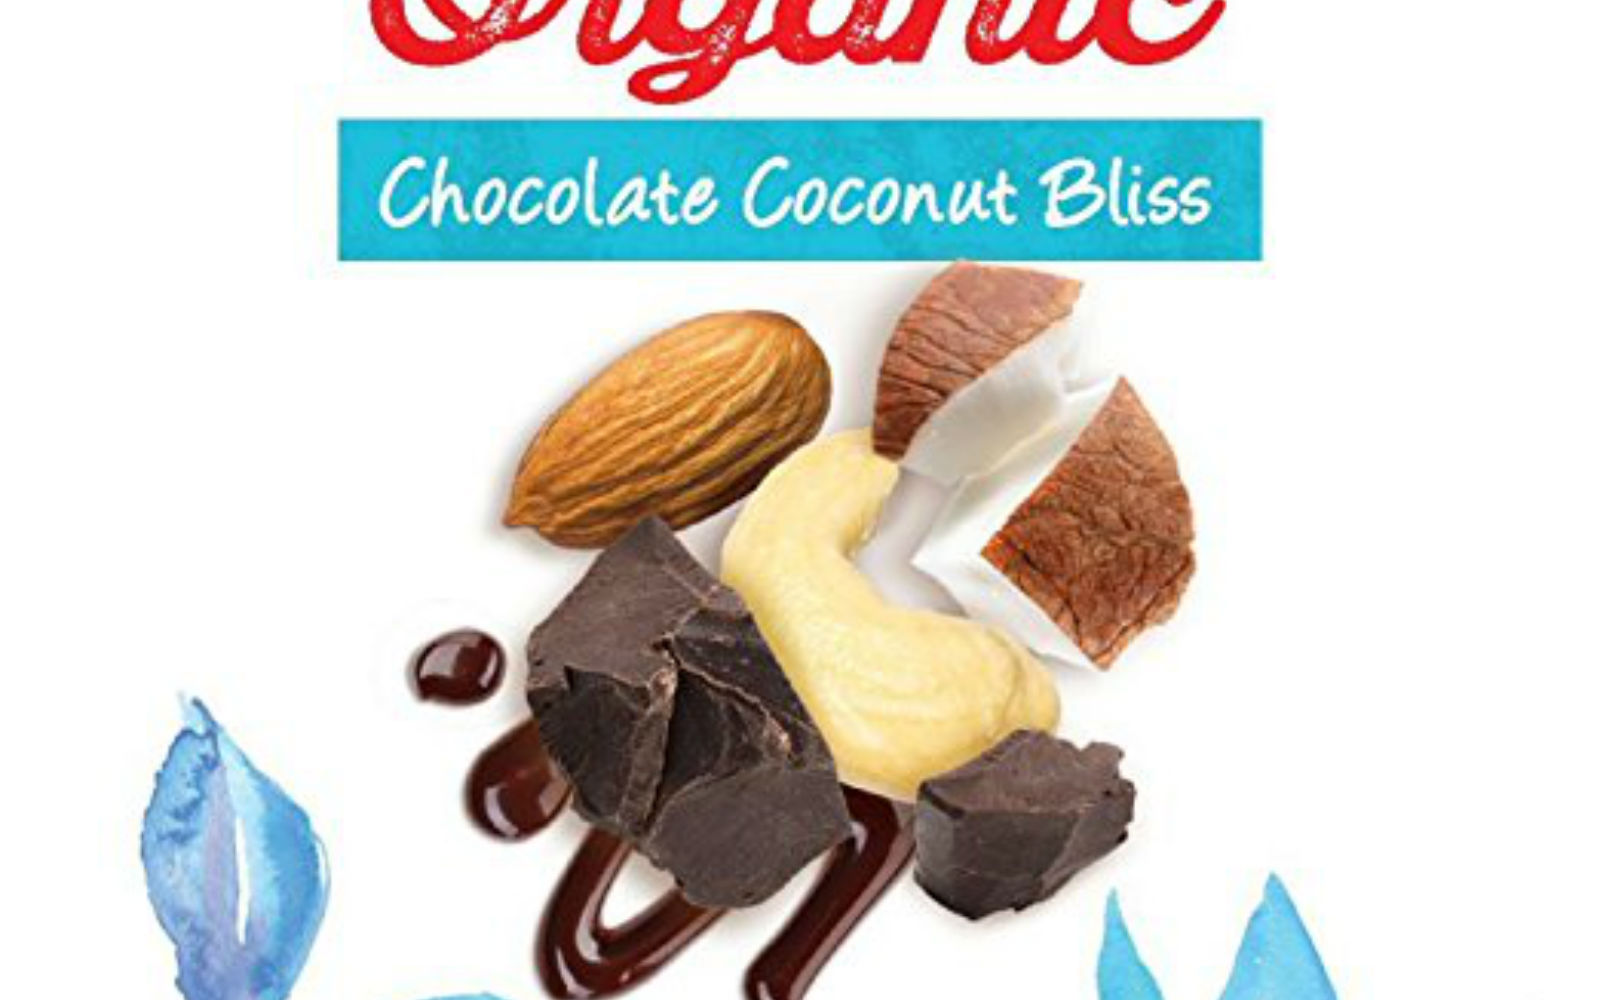 Raw Rev Chocolate Coconut Bliss Bars are free from animal products, GMOs, gluten, soy and whey protein. Each bar is made out of Agave, Dates, Cashews, ...